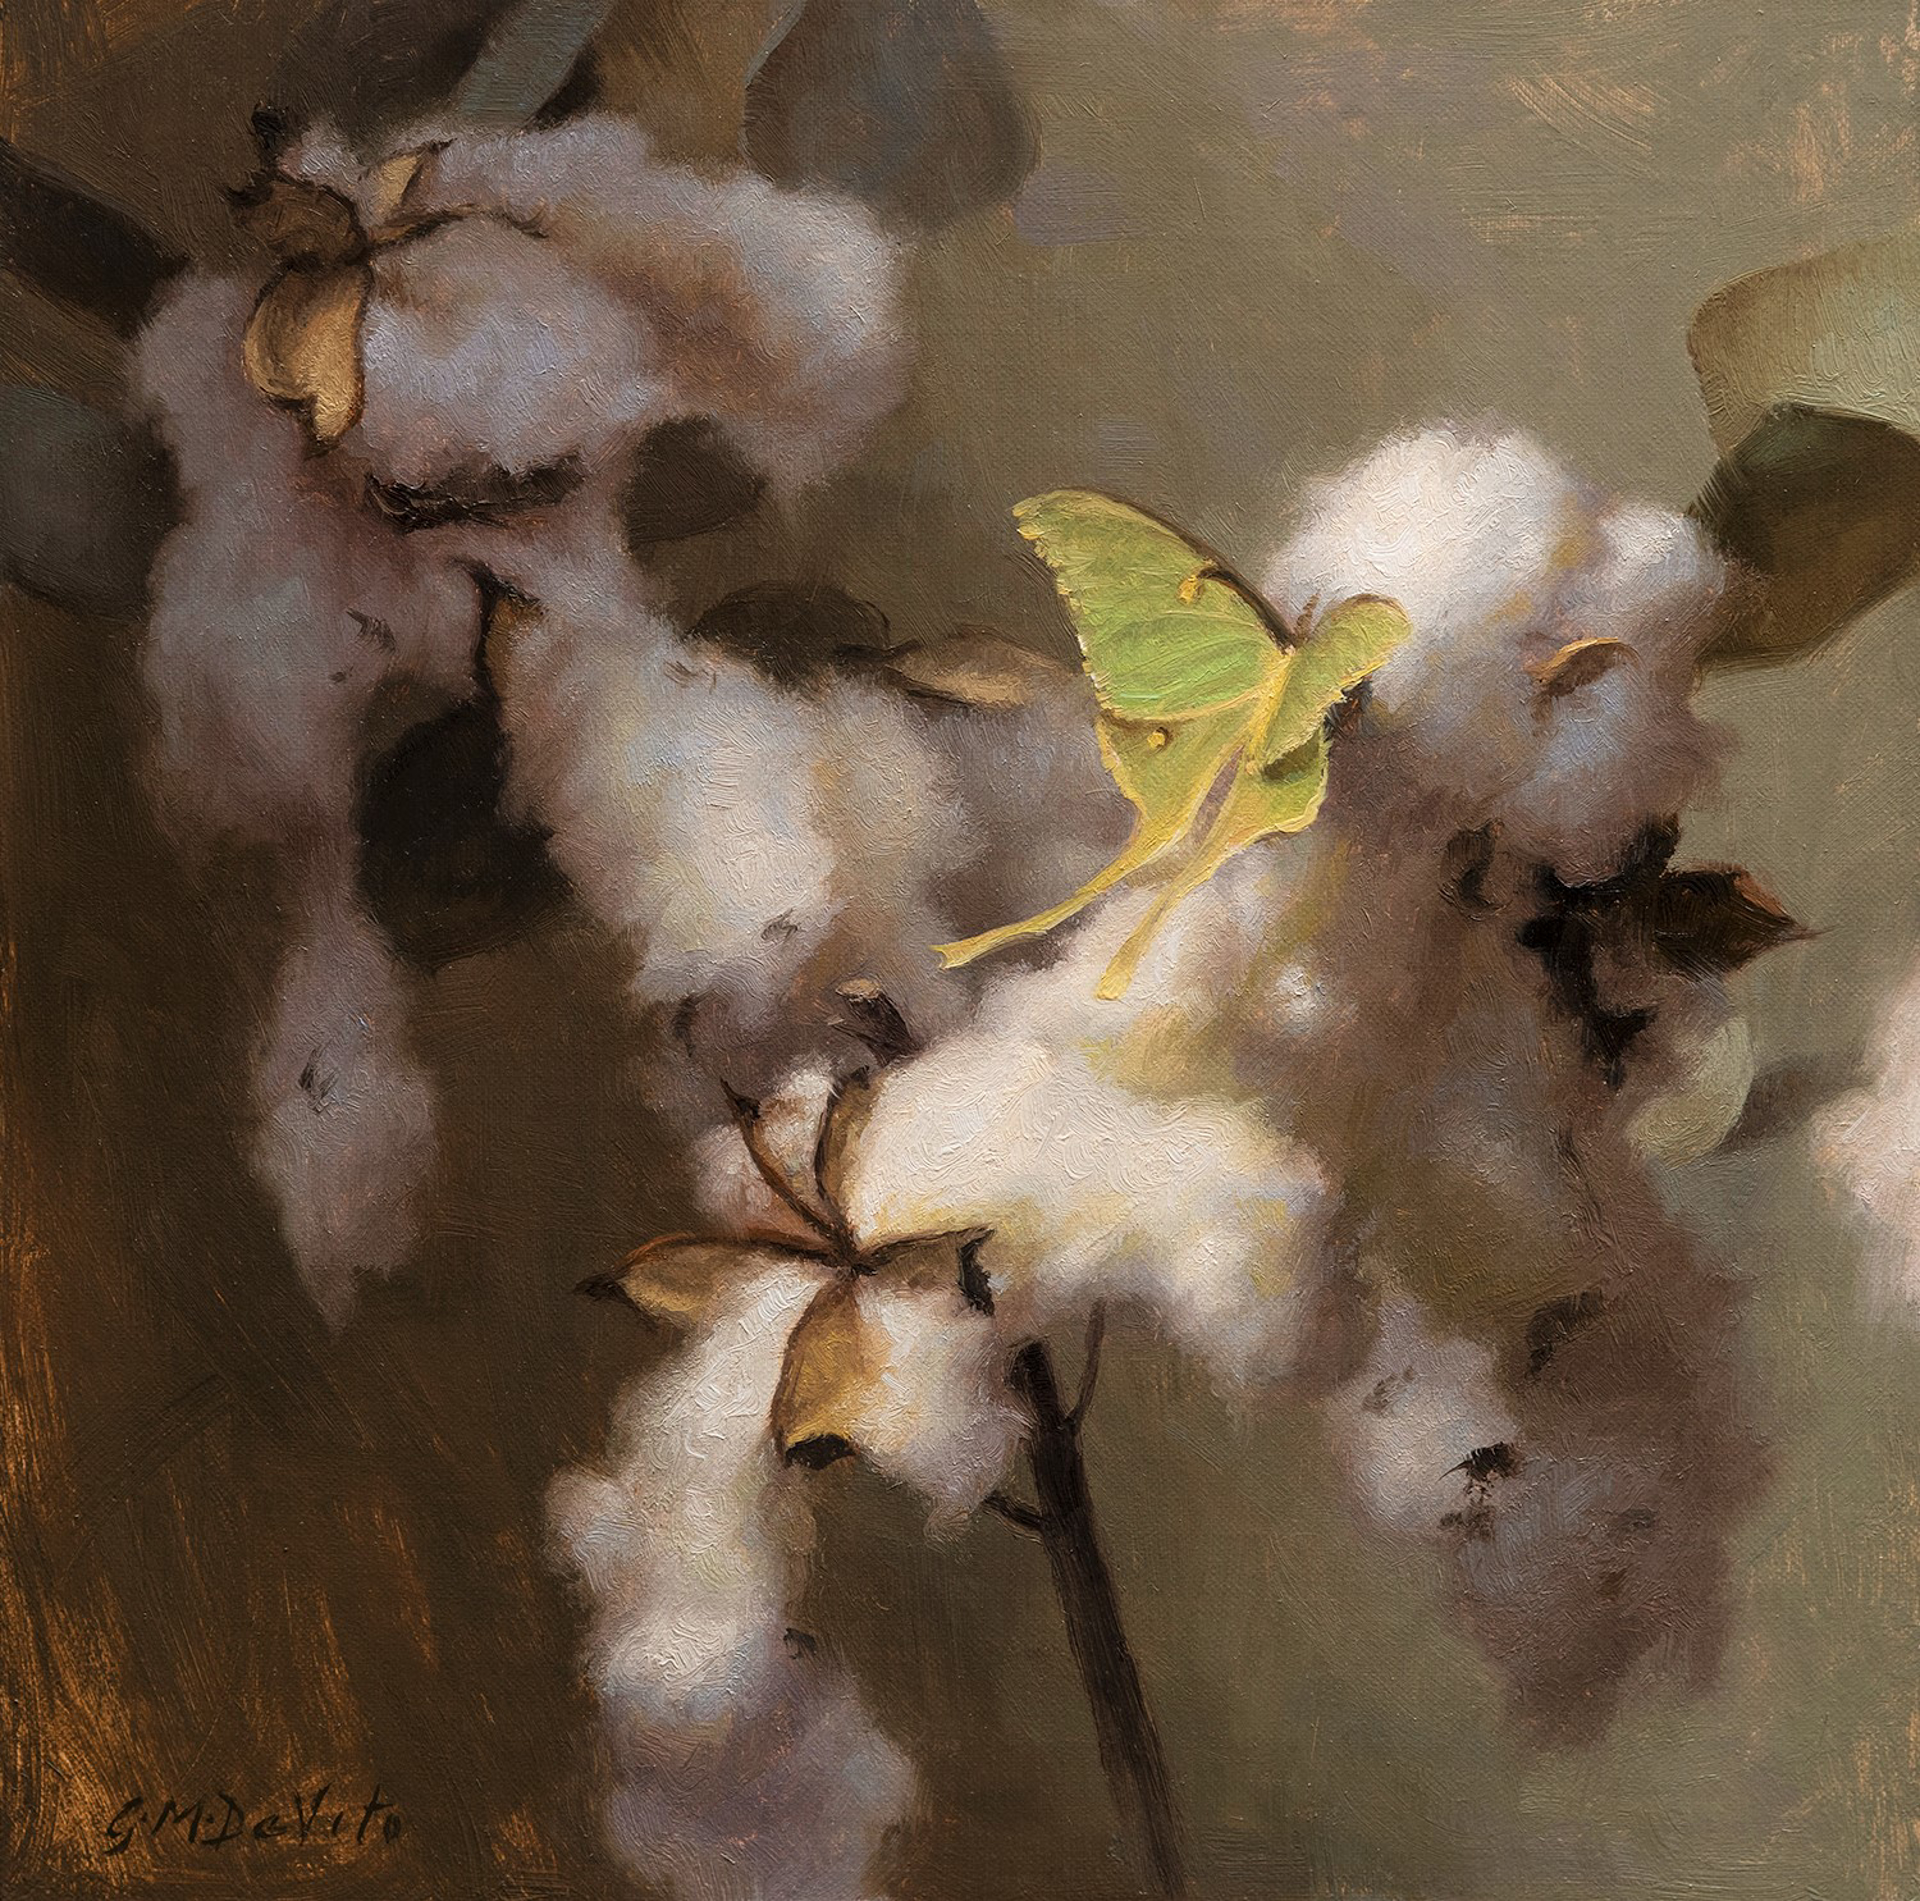 Luna Moth and Cotton Bolls by Grace DeVito